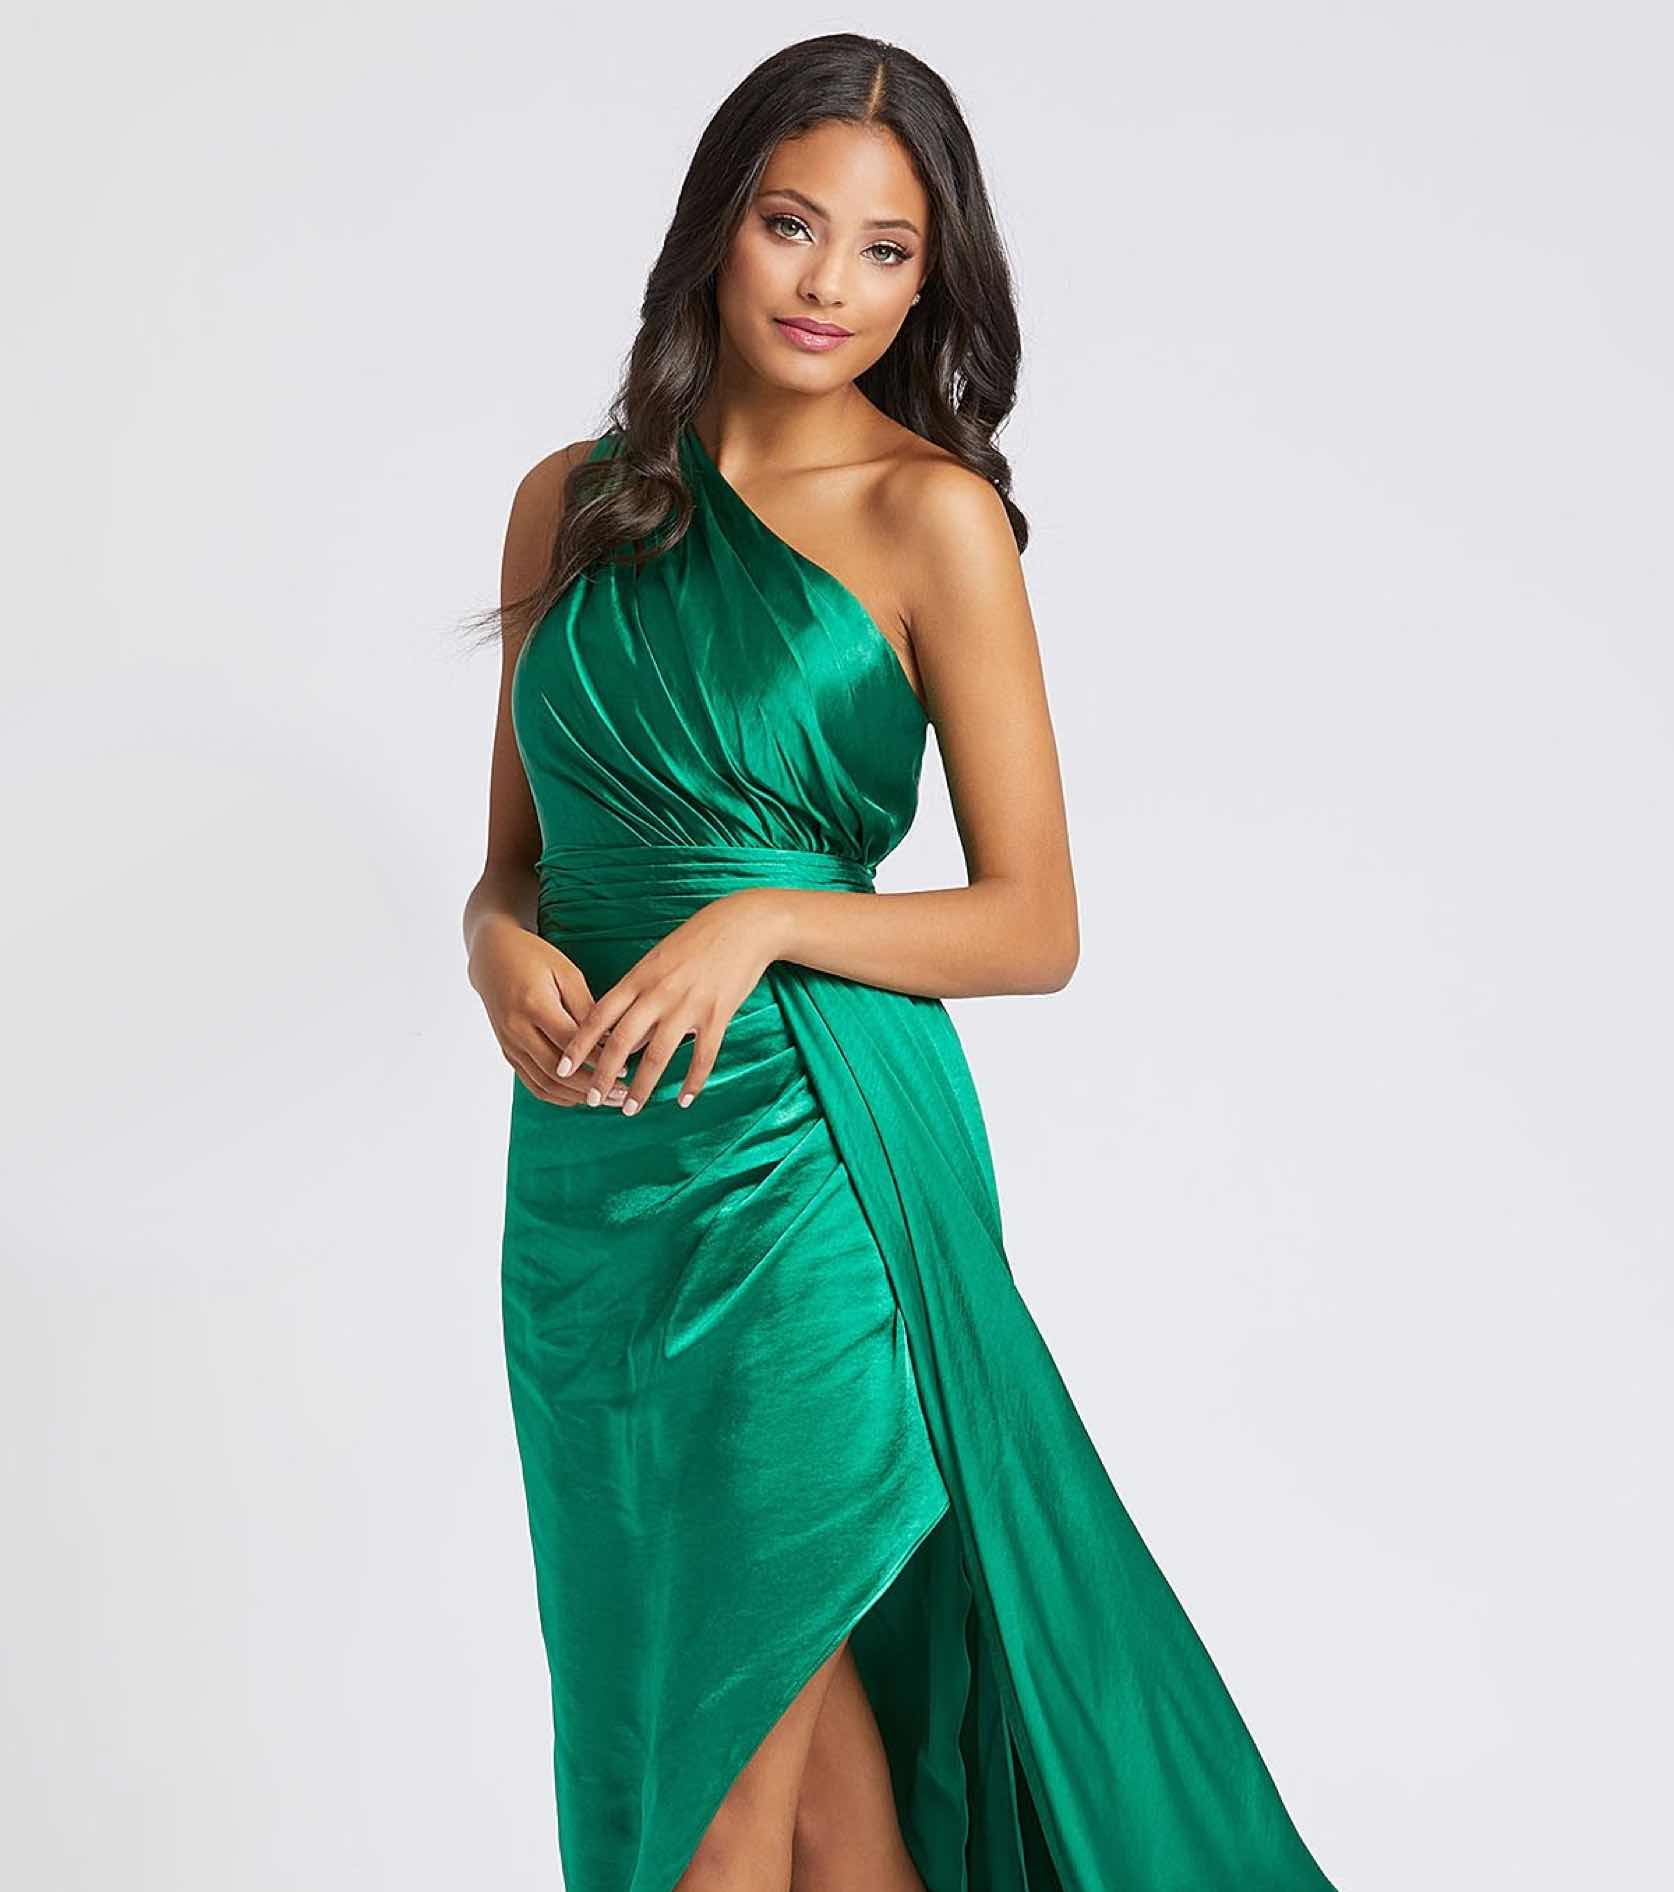 Model in green one shoulder Cassandra Stone gown